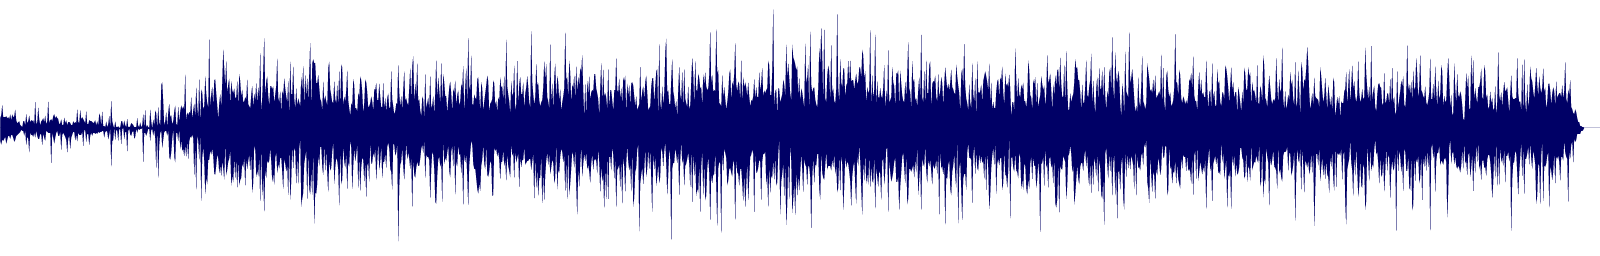 waveform of track #159673